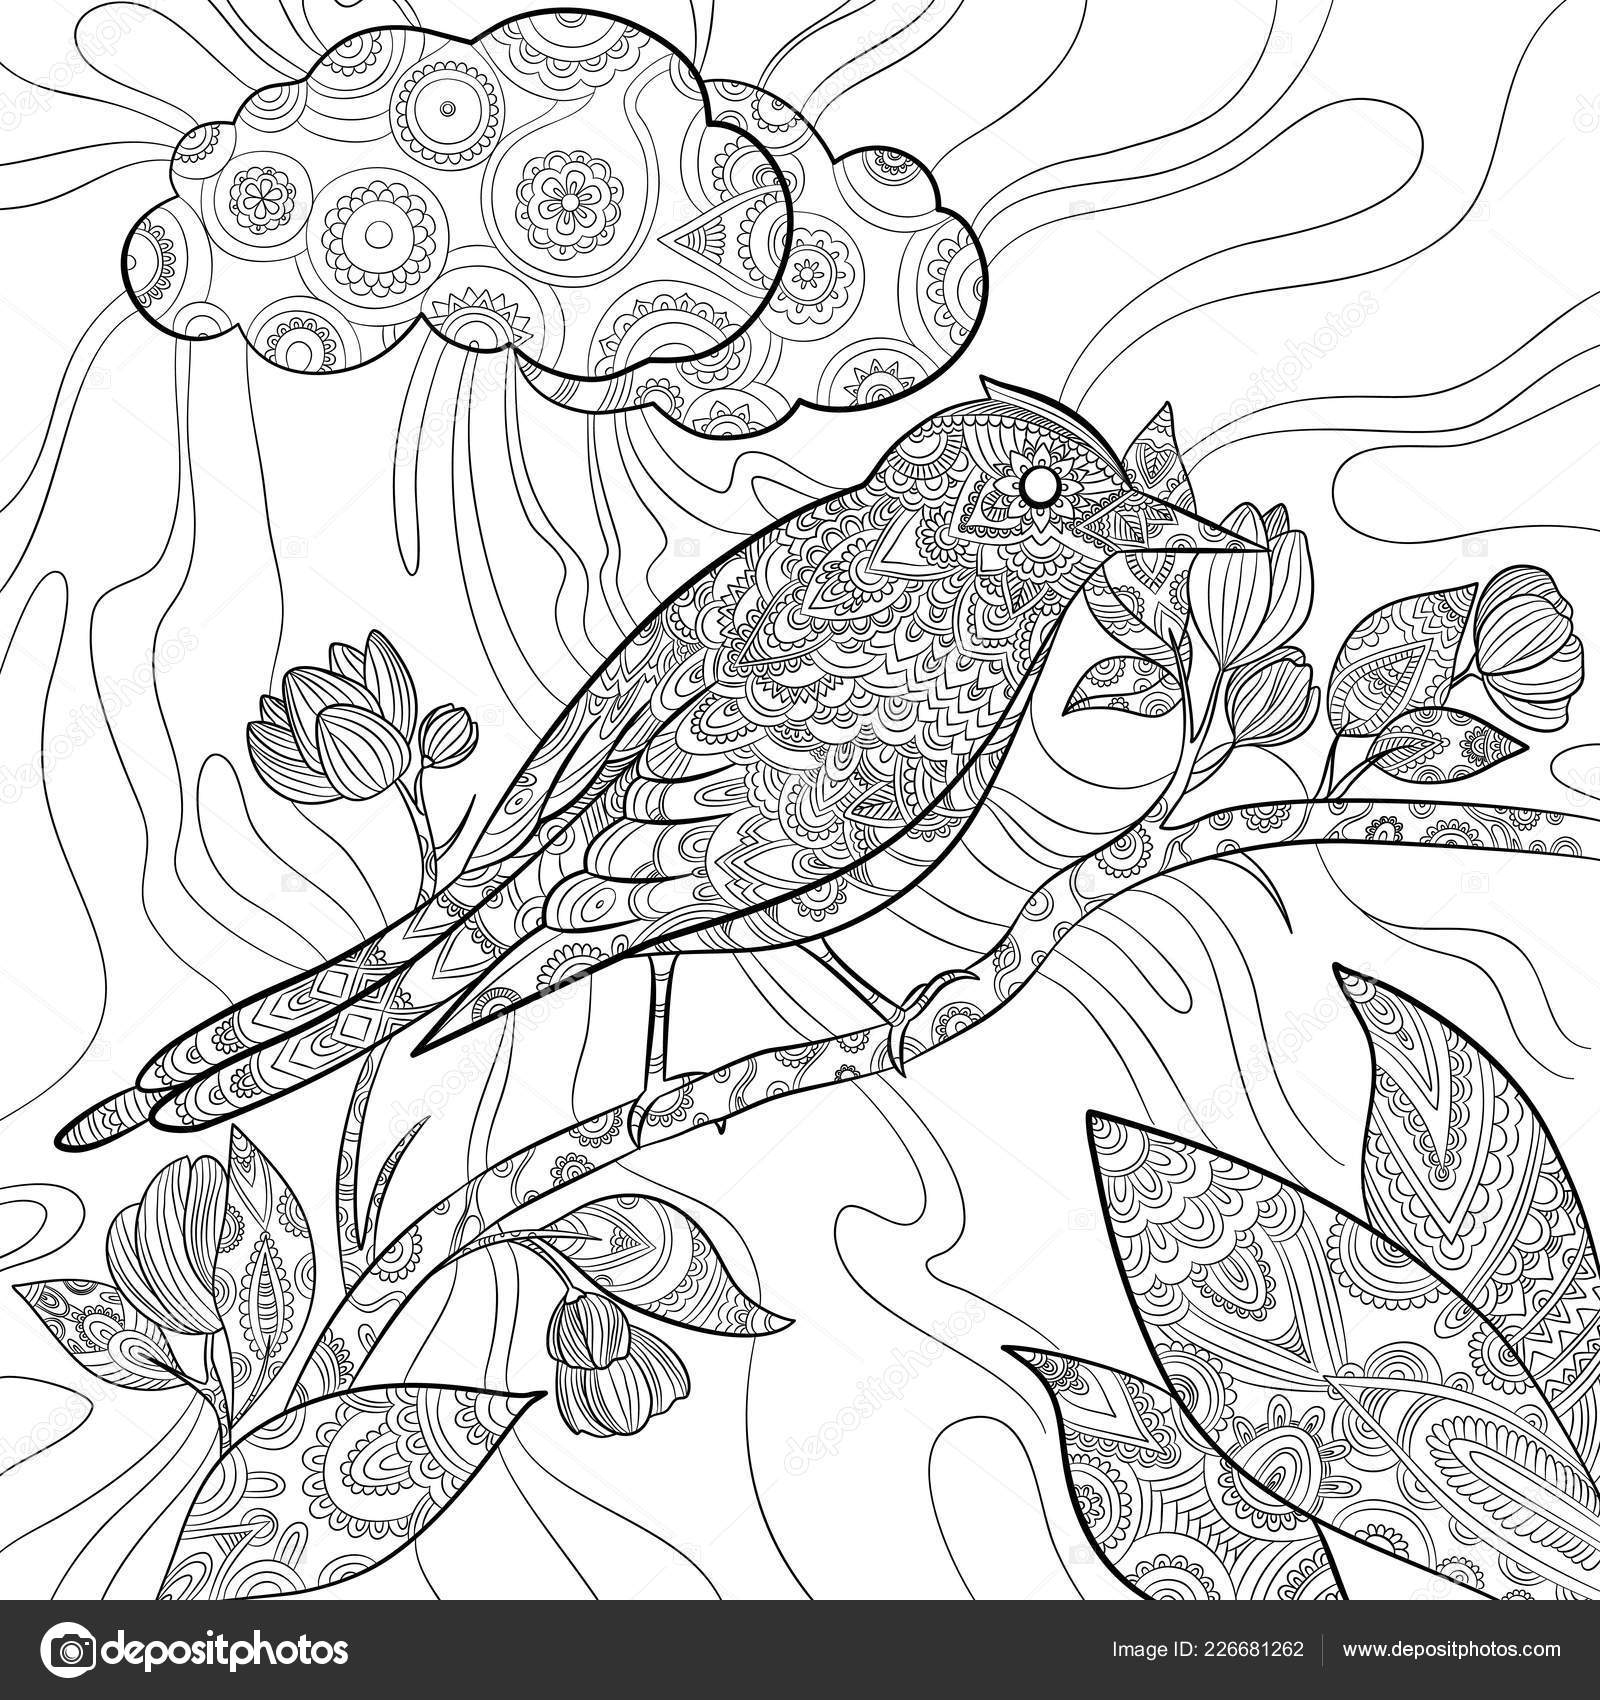 Coloring Pages Bird Wild Flying Animal In Sitting On Branch